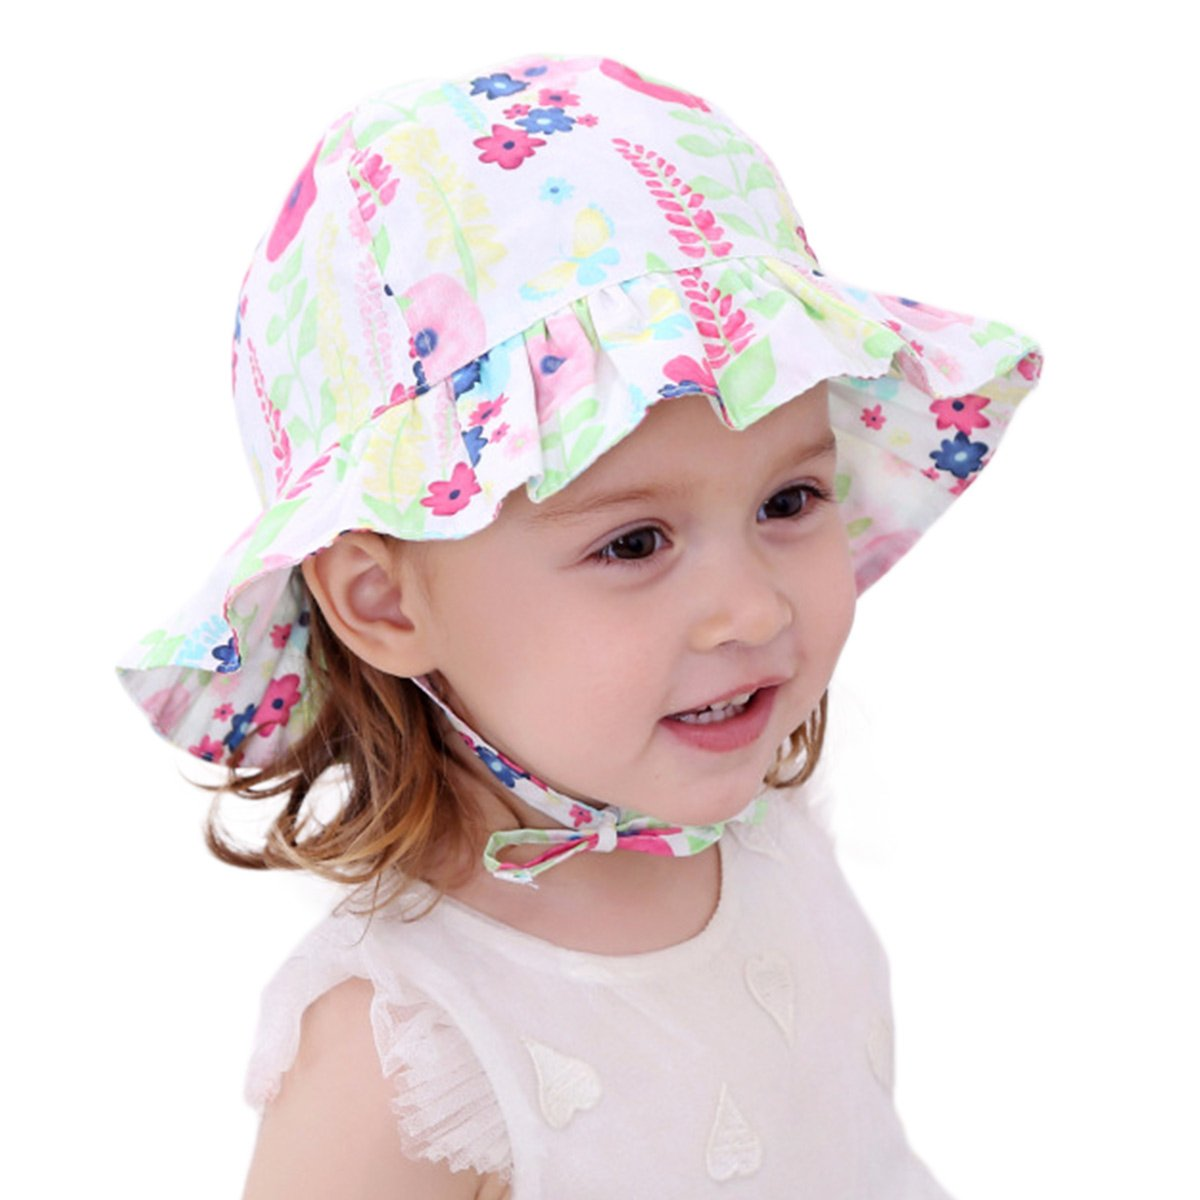 18a21502112 Amazon.com  Toddler Baby Girls Sun Hats for Summer Sun Protection Beach Hat  for Kids 0M-6T Green Flower  Clothing